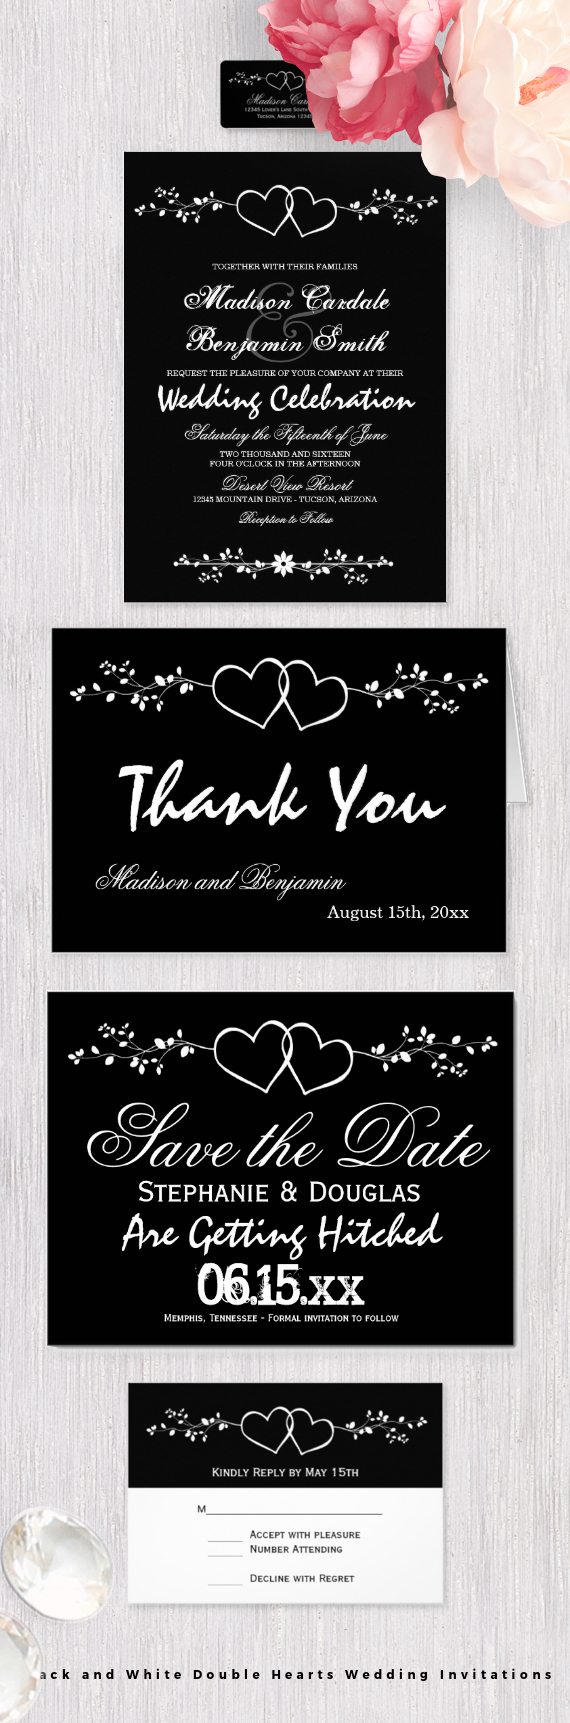 Black And White Double Hearts Wedding Invitations Featured Two